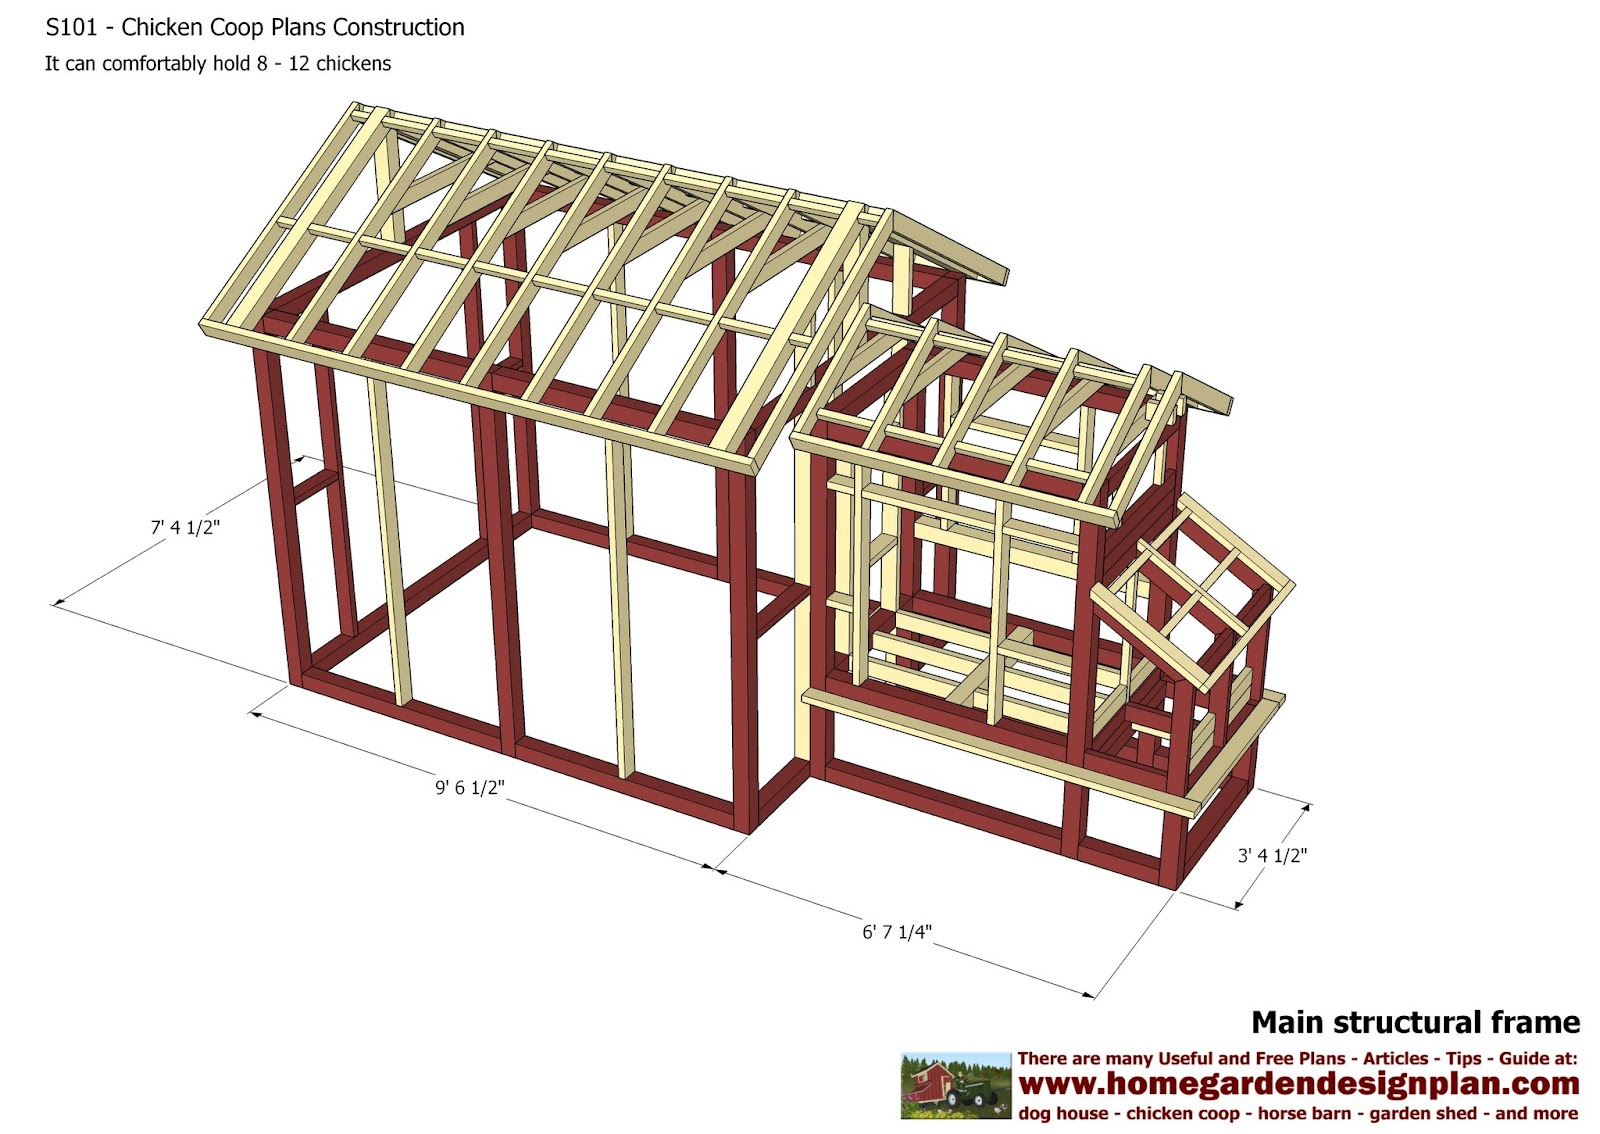 Home garden plans s101 chicken coop plans construction for Plans for a chicken coop for 12 chickens